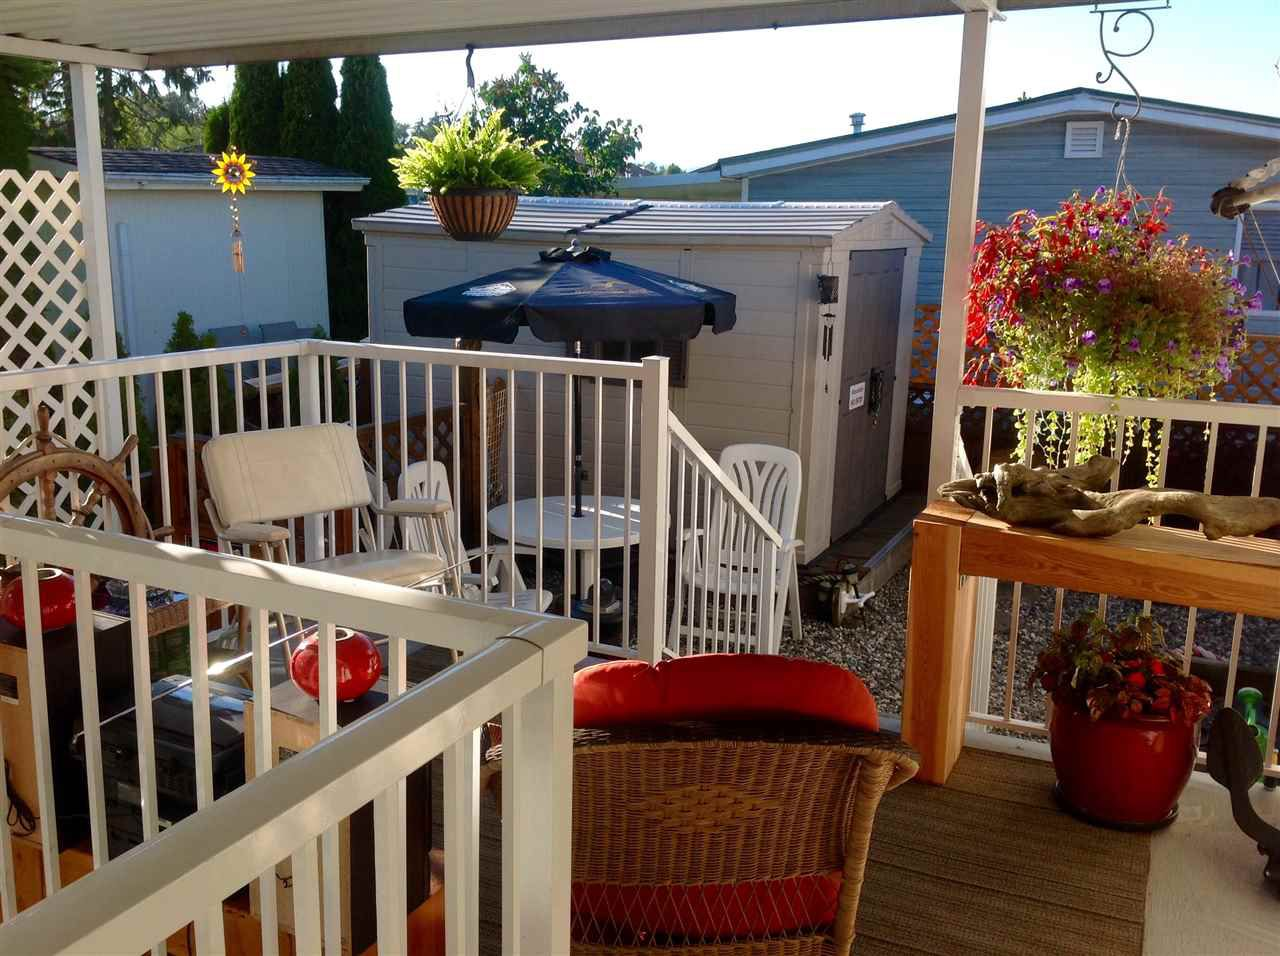 """Photo 4: Photos: 17 8254 134 Street in Surrey: Queen Mary Park Surrey Manufactured Home for sale in """"Westwood Estates"""" : MLS®# R2288604"""